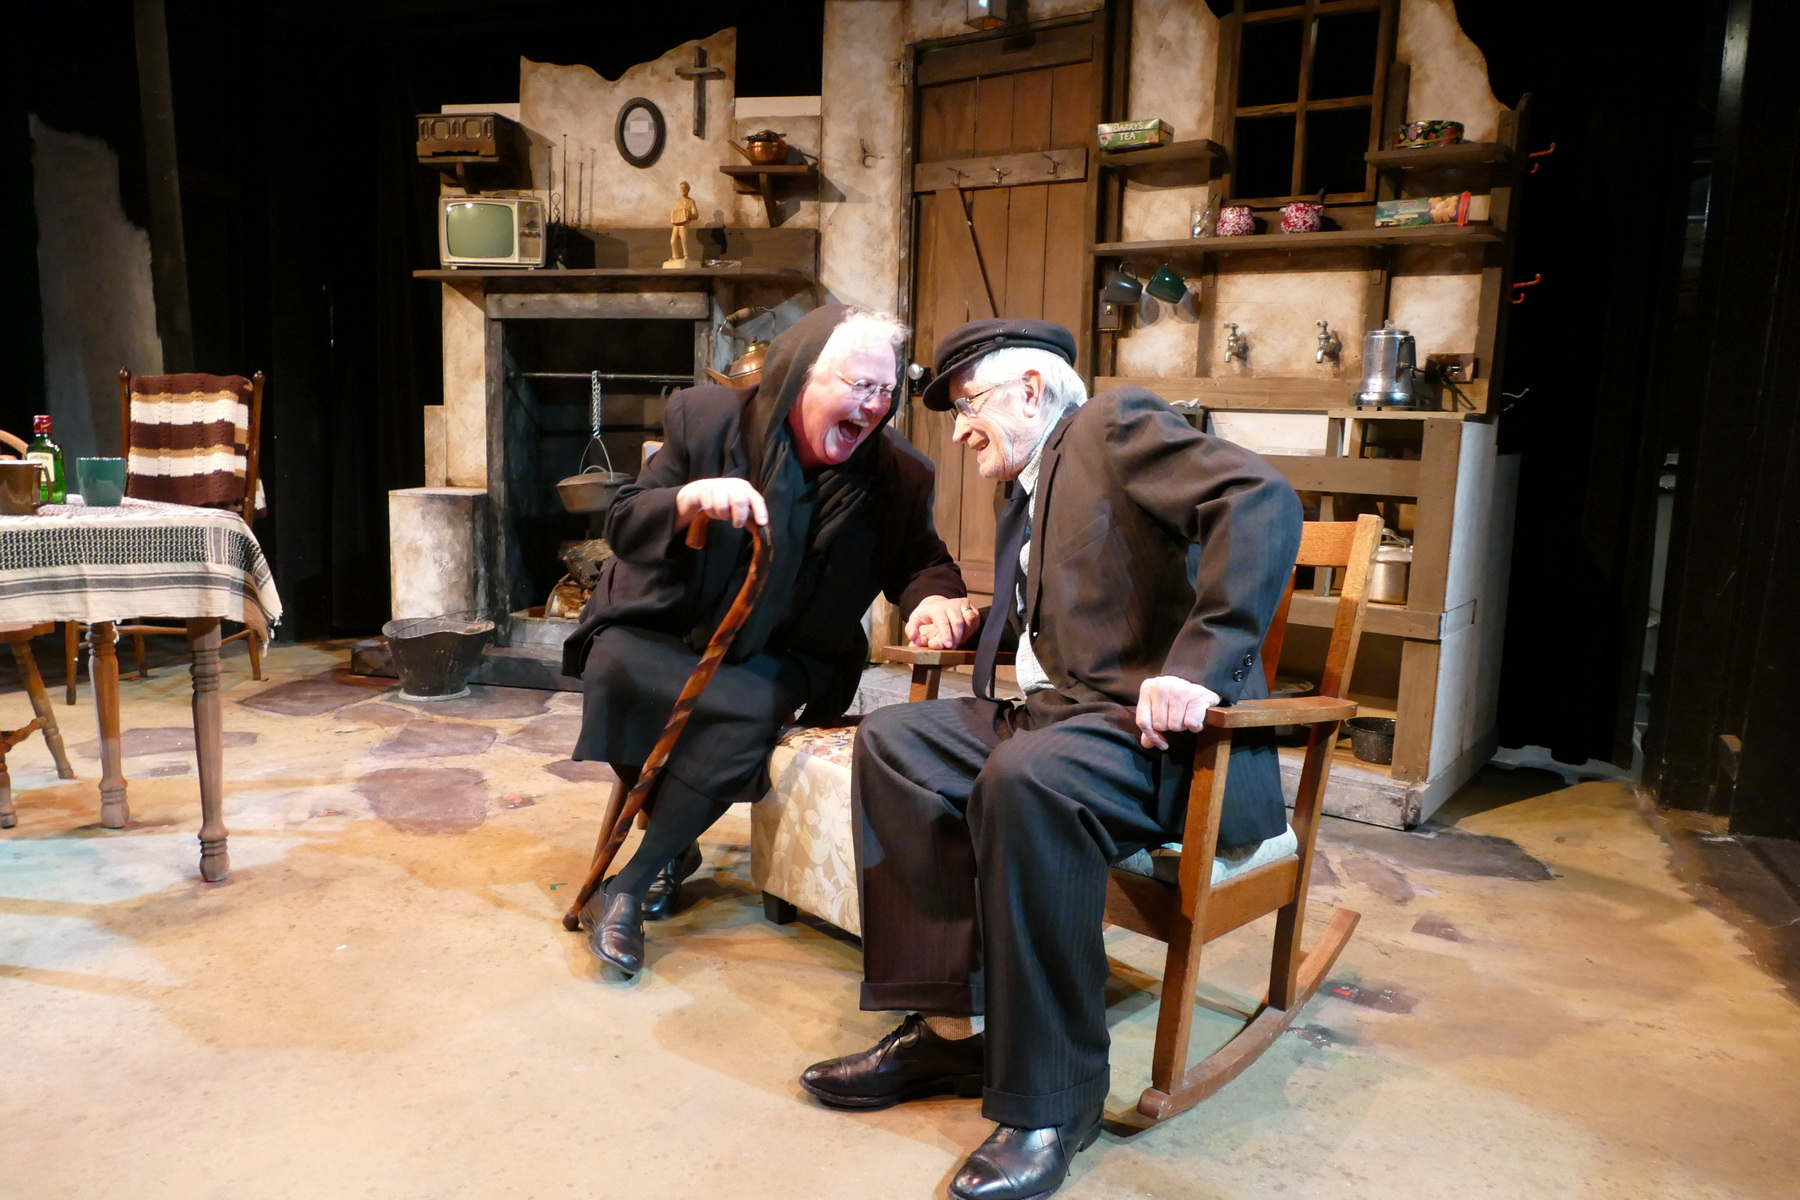 Rose A. Leininger as Aoife Muldoon and Ron Newell as Tony Reilly